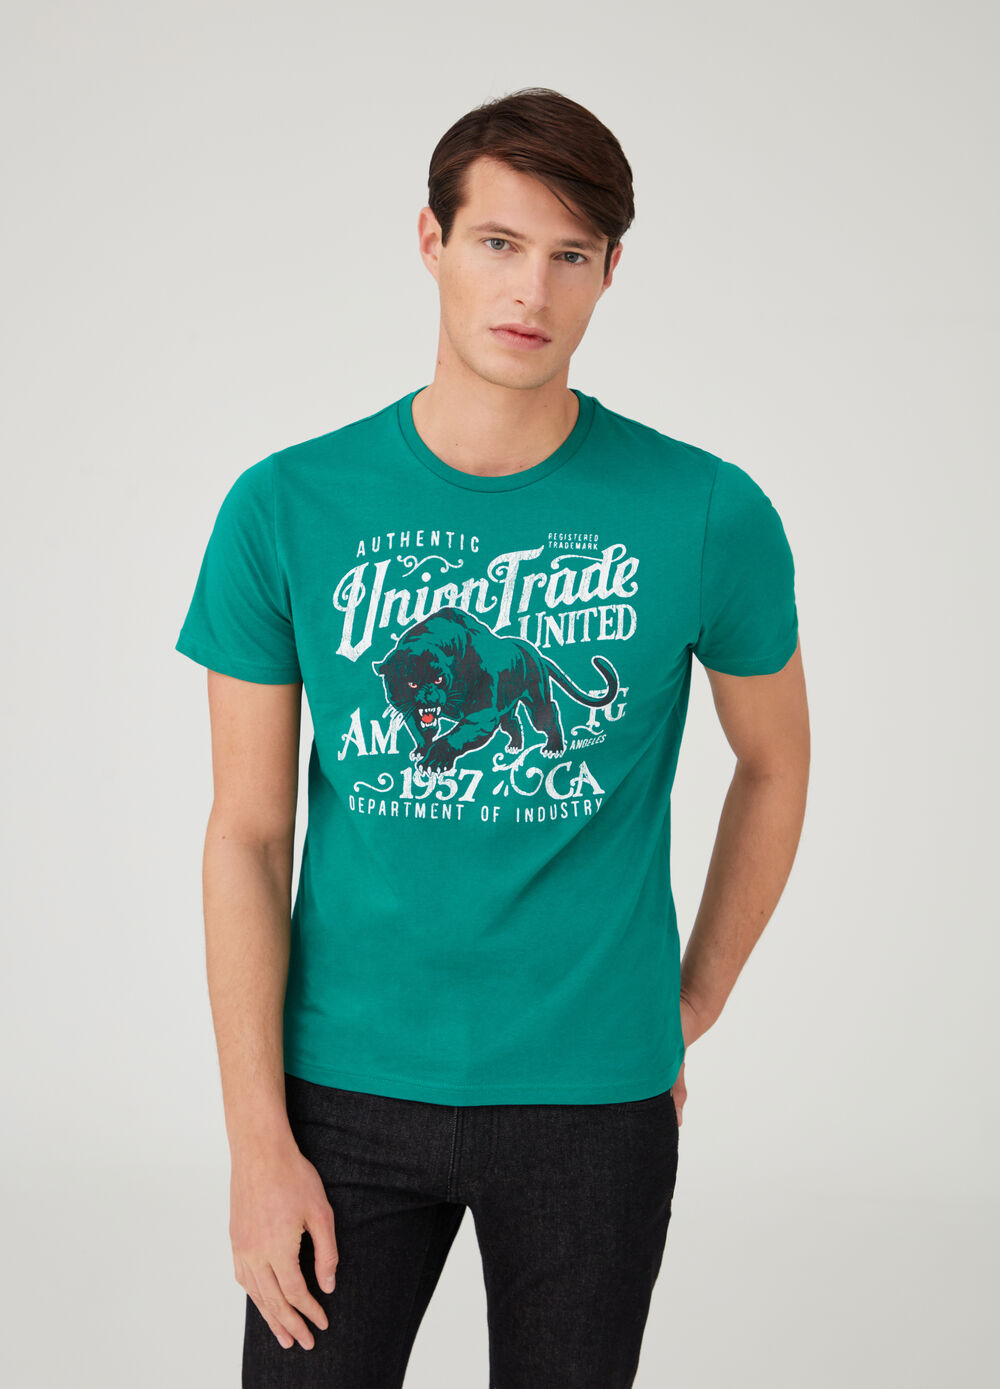 Printed T-shirt in 100% cotton jersey